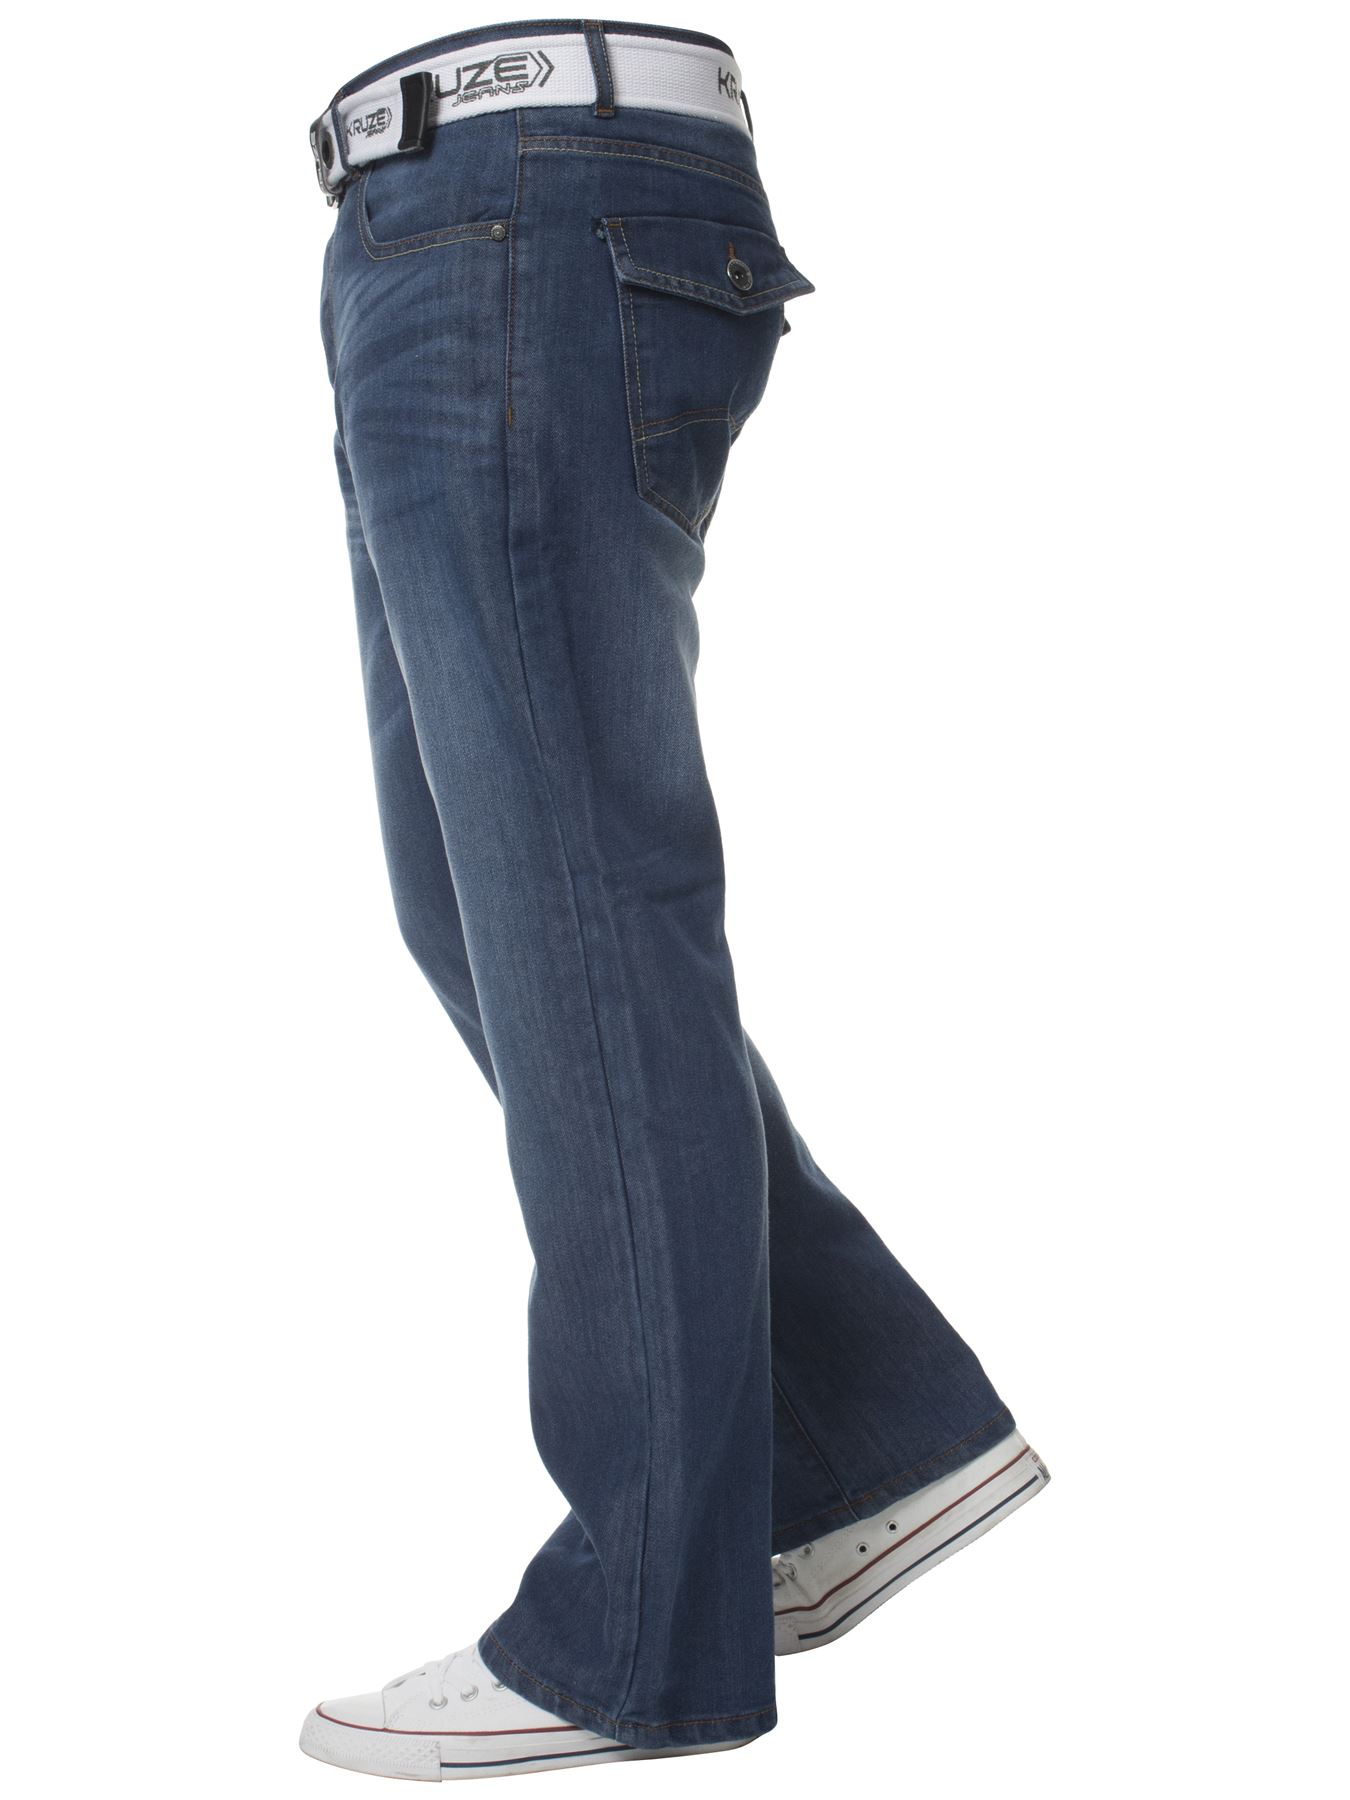 Kruze-Denim-New-Mens-Bootcut-Jeans-Wide-Leg-Flare-Pants-King-Big-All-Waist-Sizes thumbnail 22